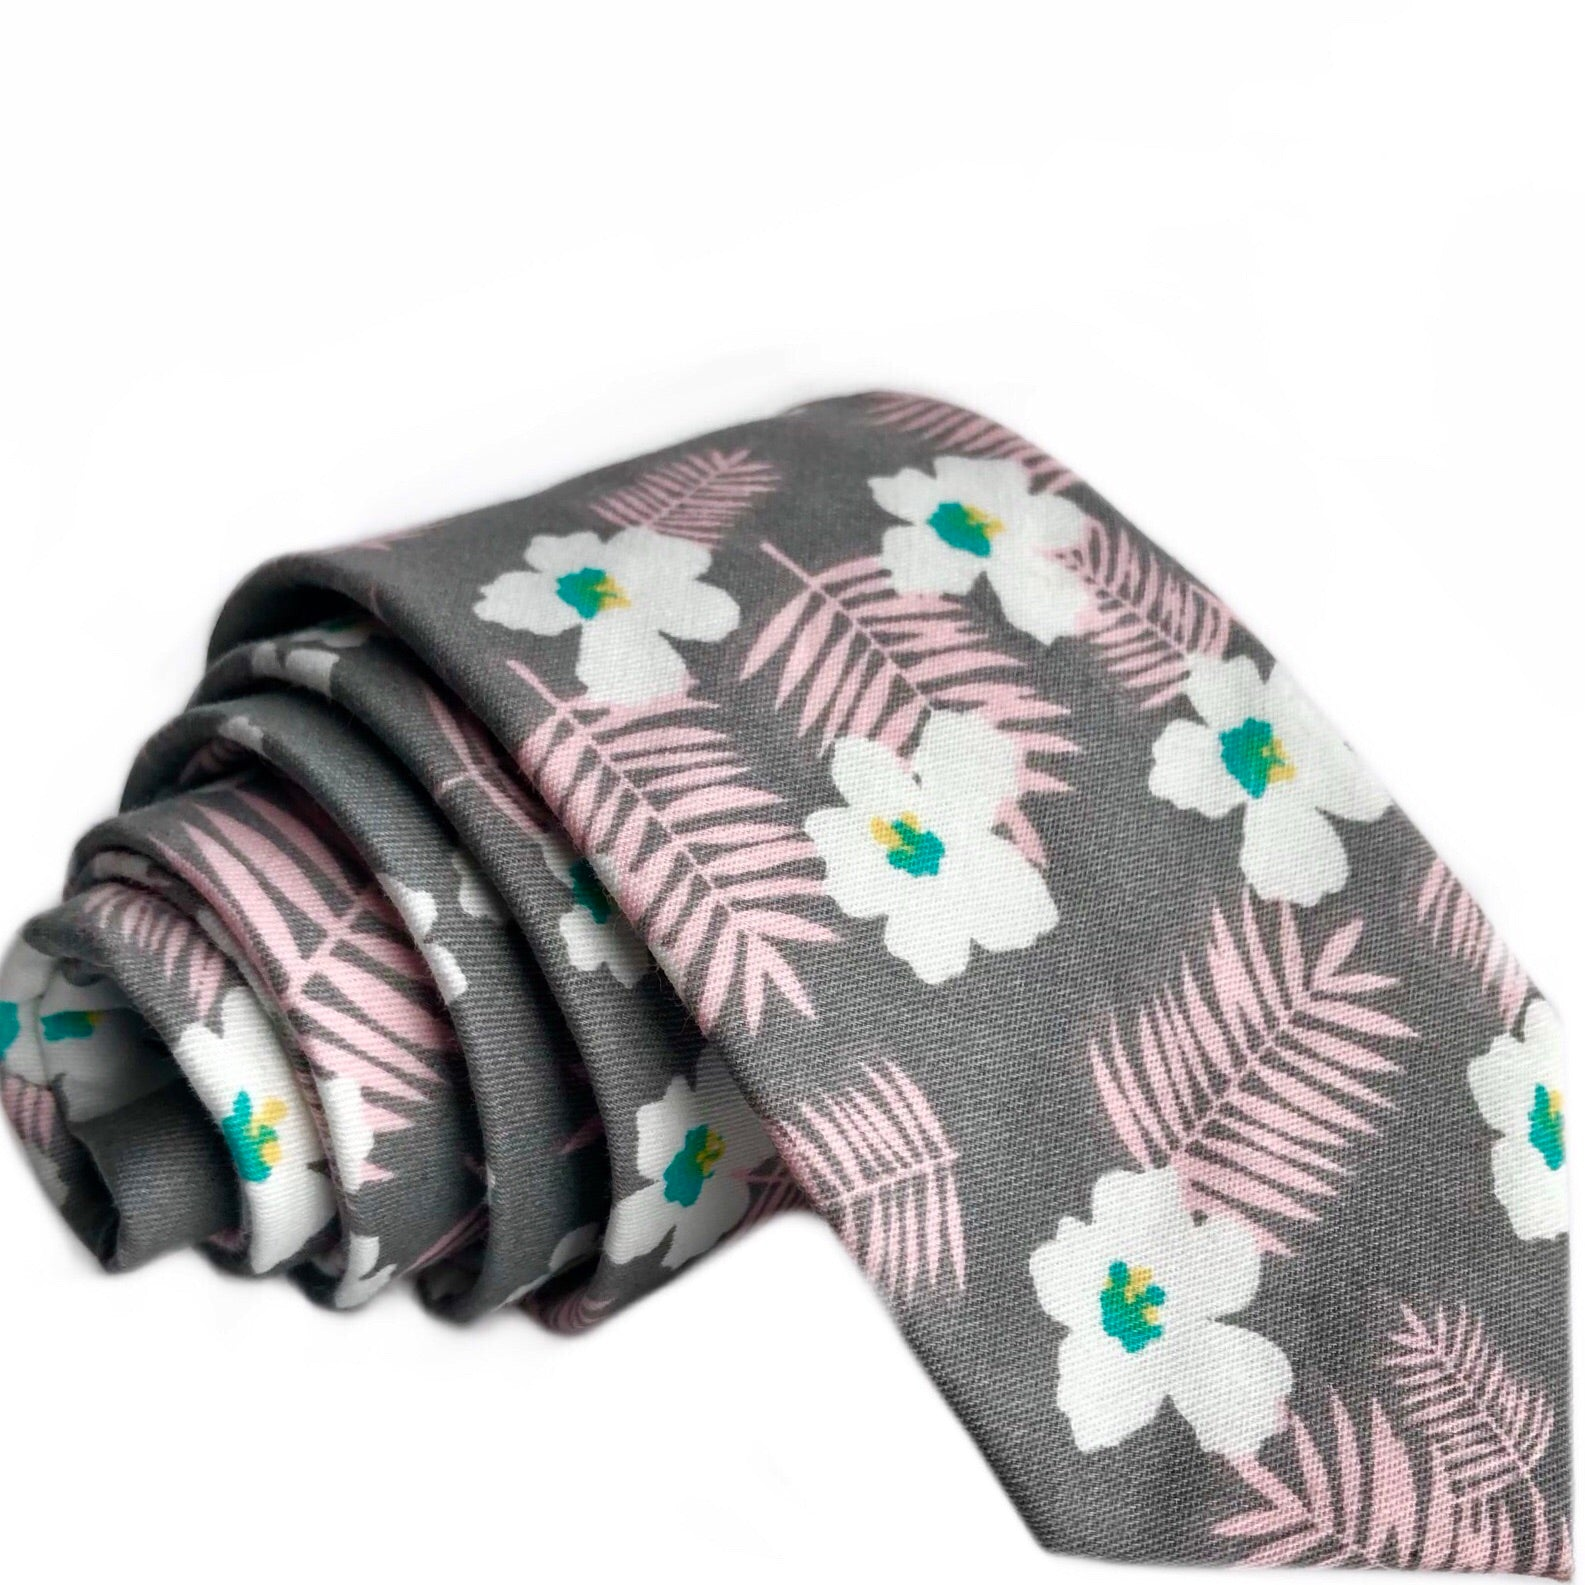 Koa Floral Tie in Grey